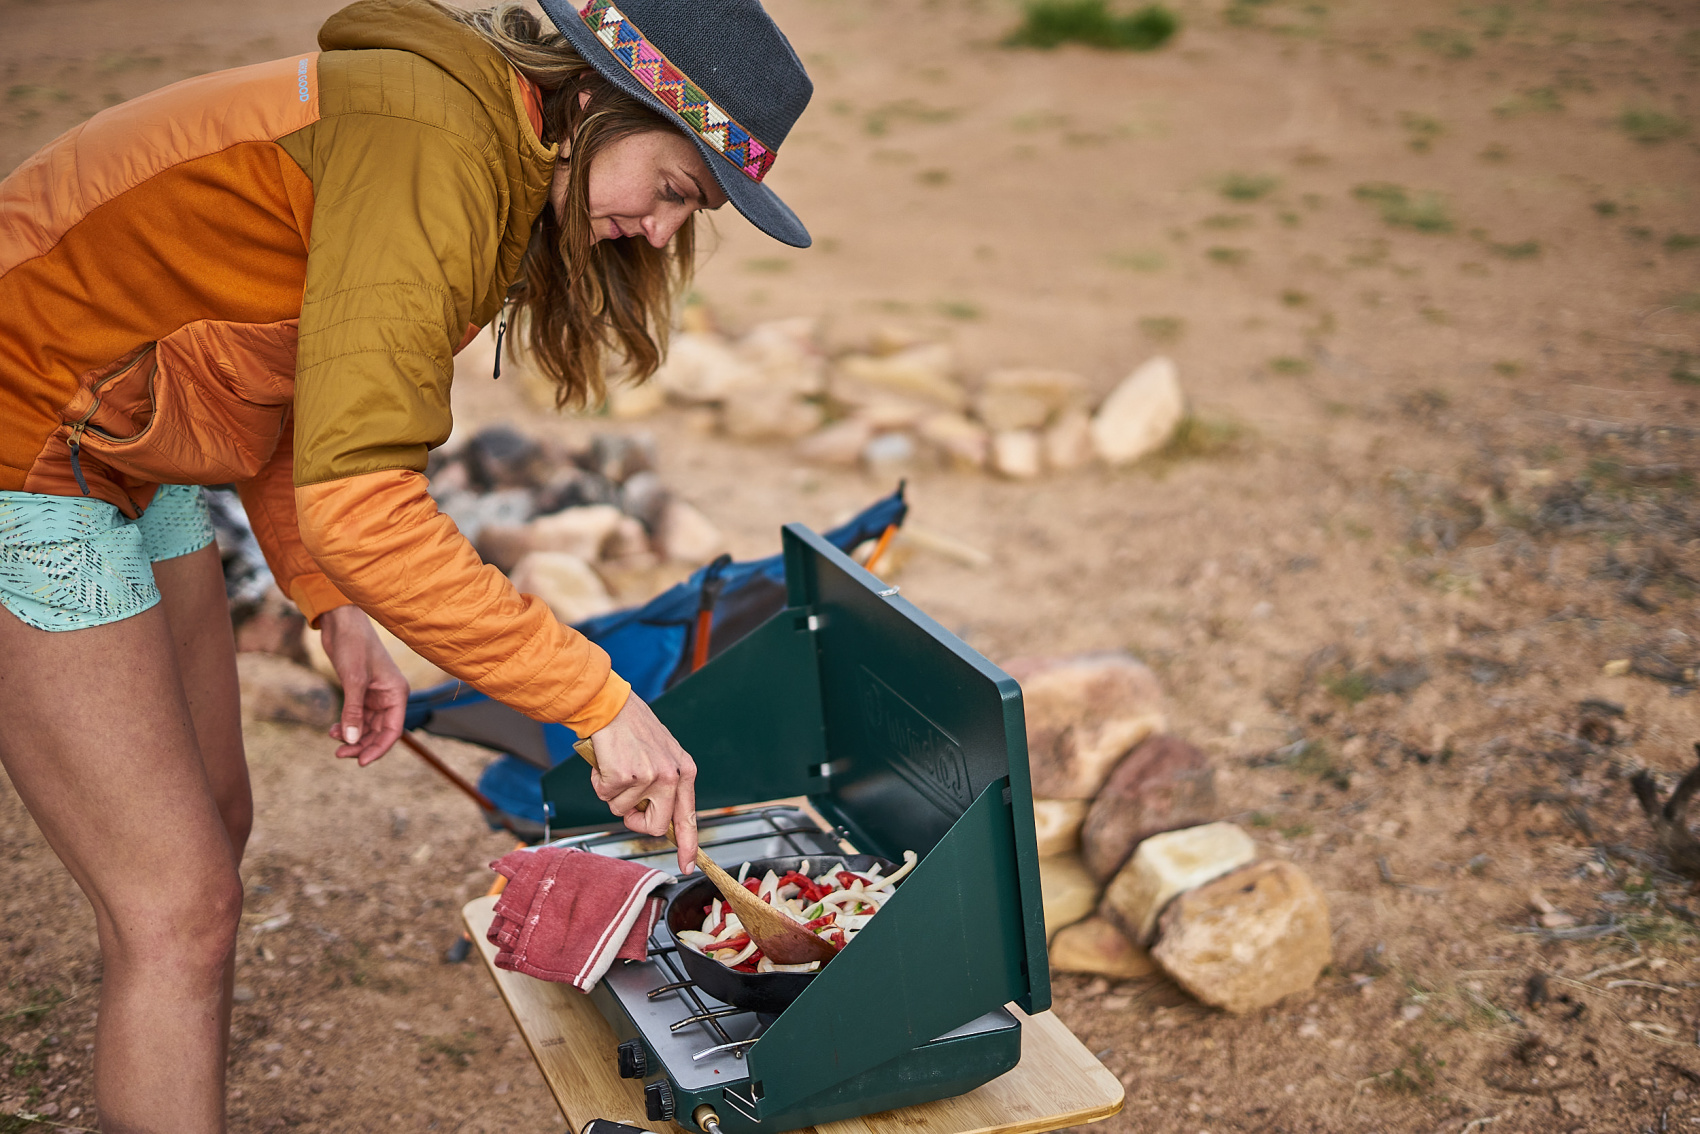 How to cook a great dinner while camping! Recipe for grilled chicken fajitas by Amanda Outside.